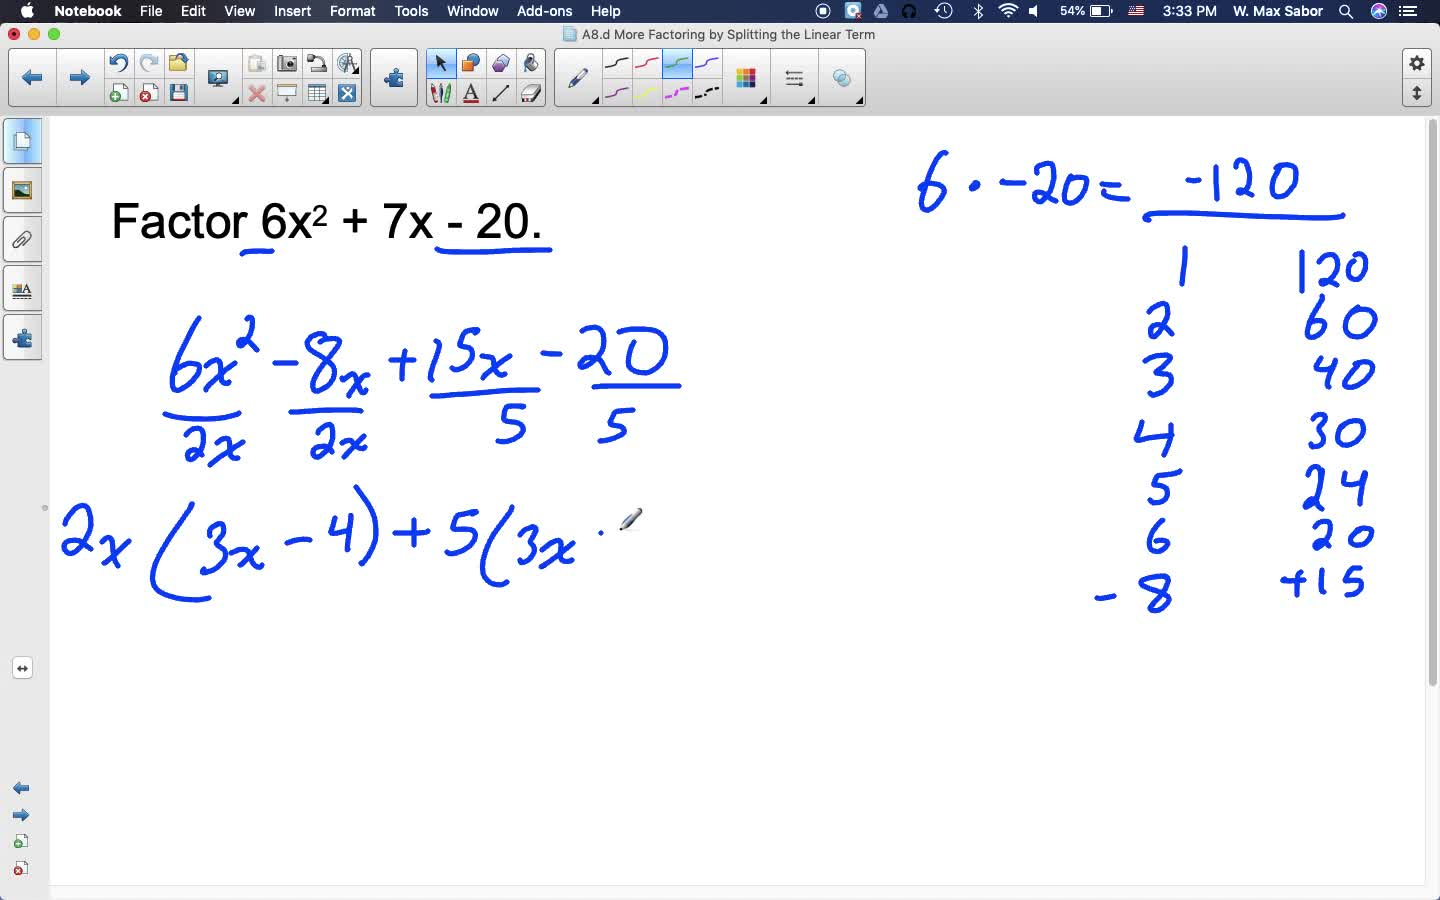 A8.d More Factoring by Splitting the Linear Term